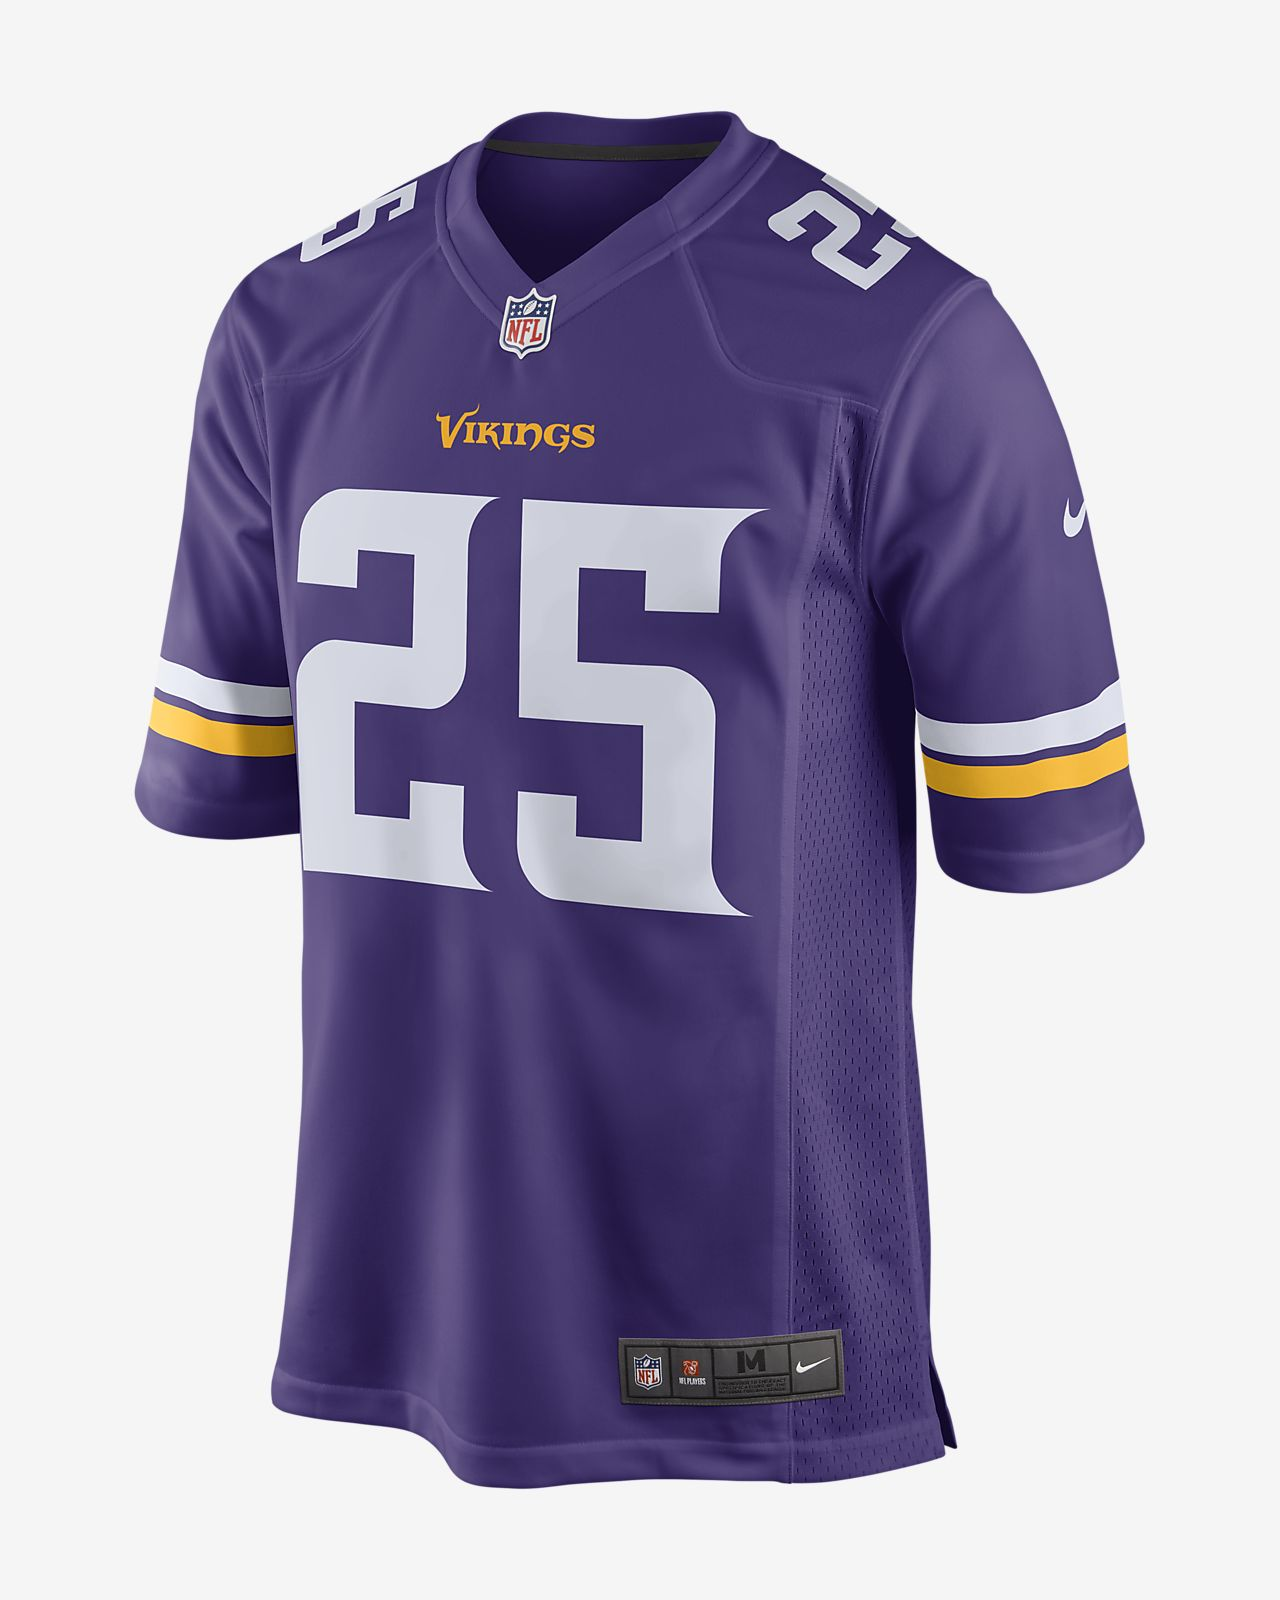 reputable site 47042 efc0b NFL Minnesota Vikings (Latavius Murray) Men's American Football Home Game  Jersey